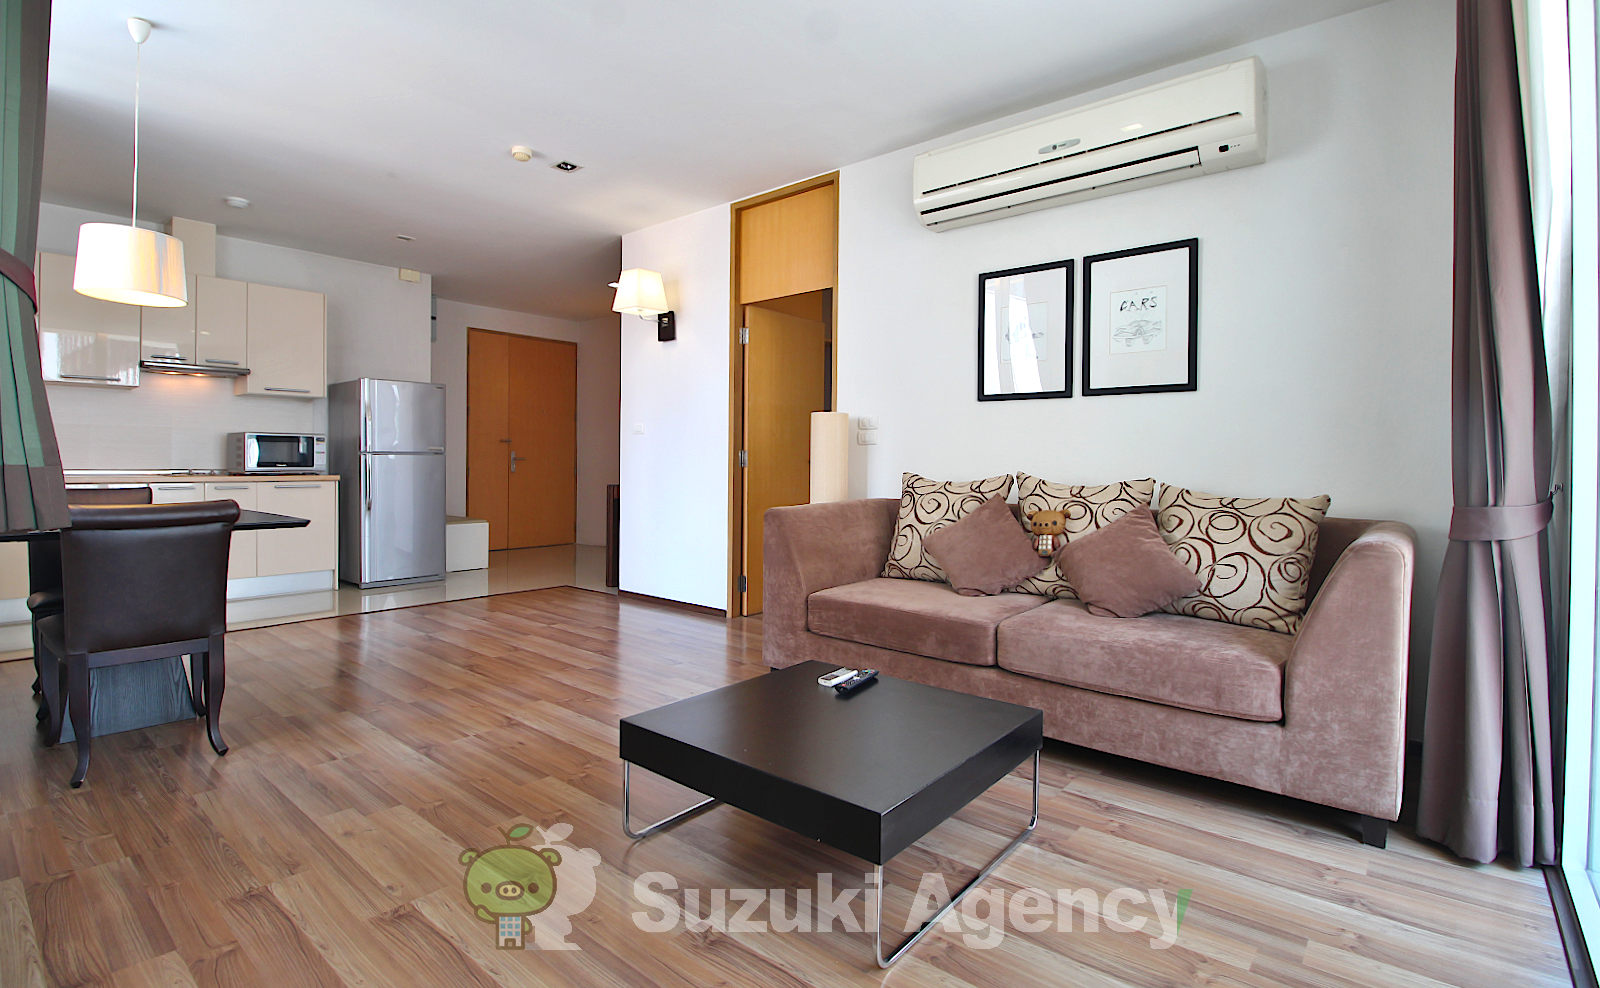 39 Residence:1Bed Room Photos No.4